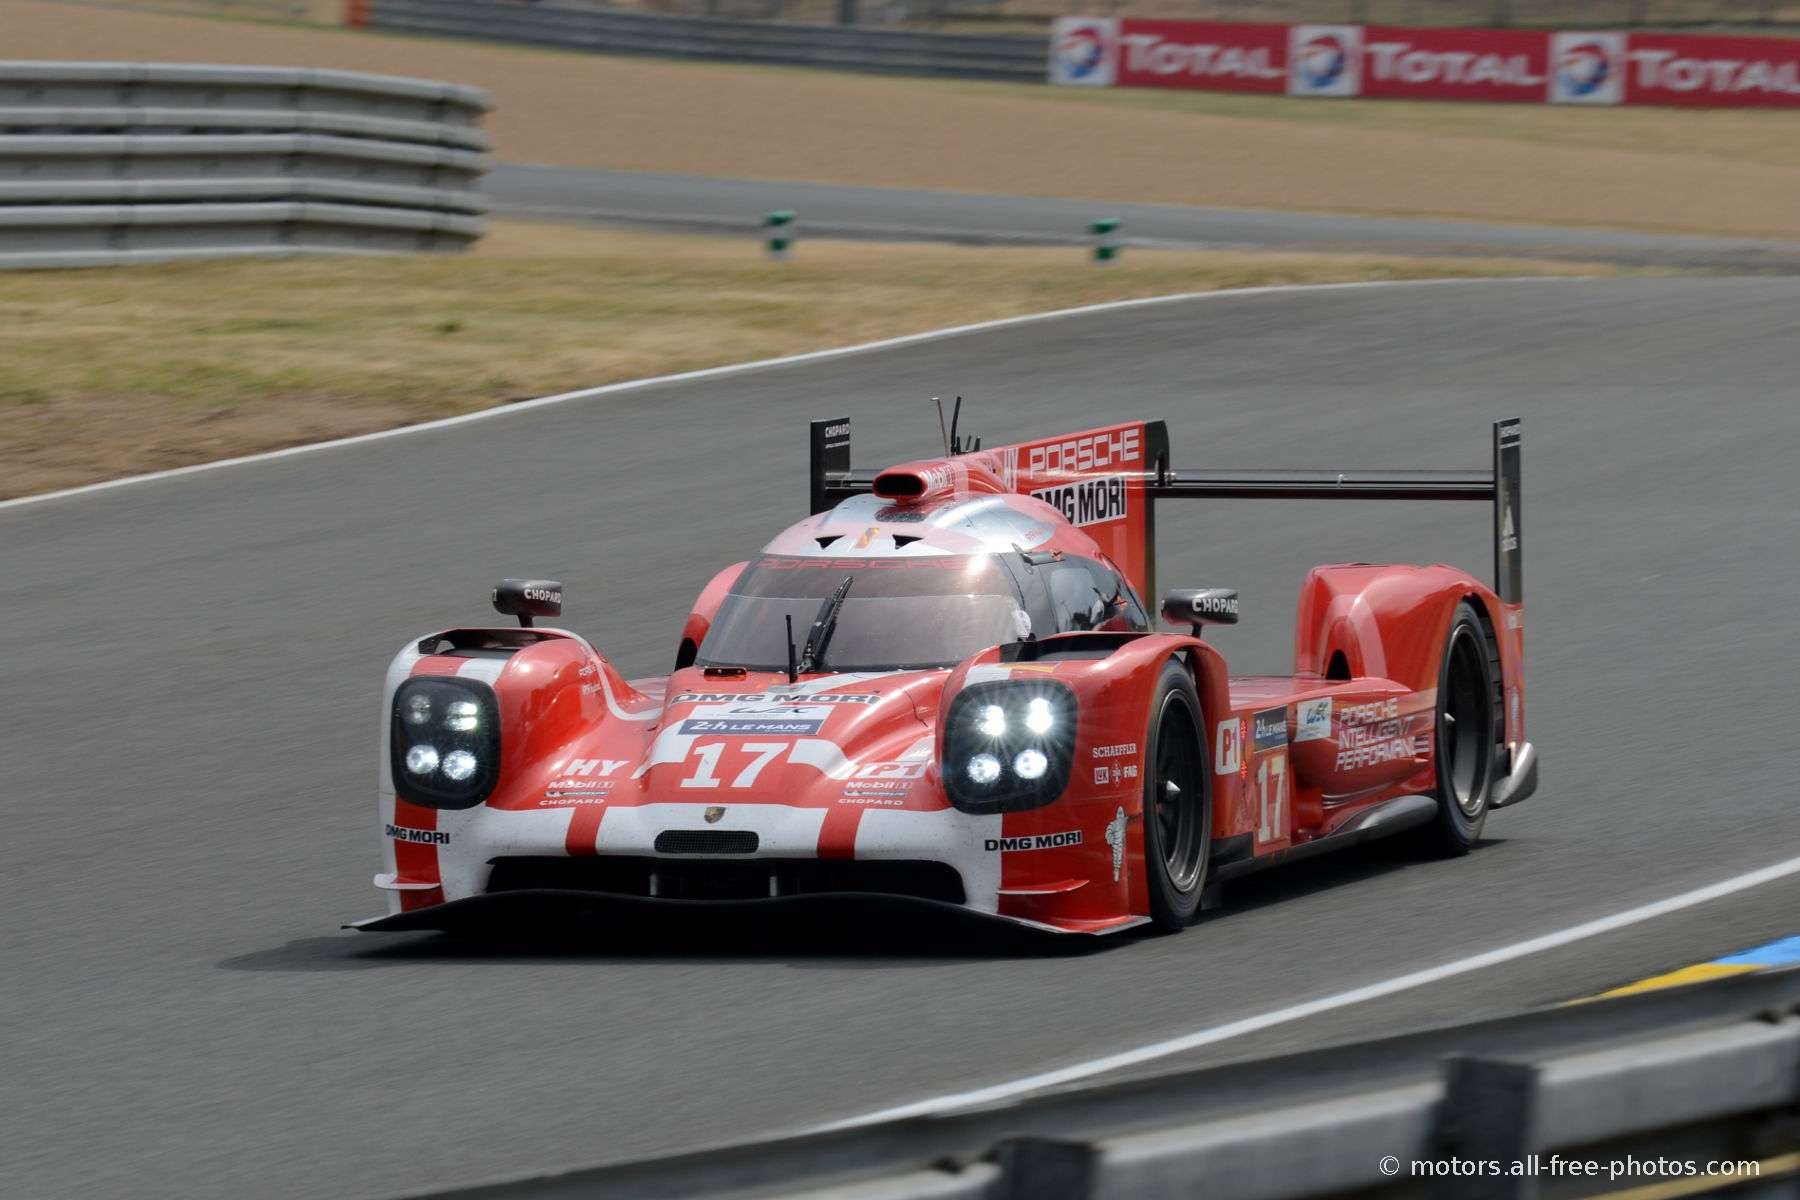 Home galleries motorsport le mans 2015 lmp porsche 919 hybrid team